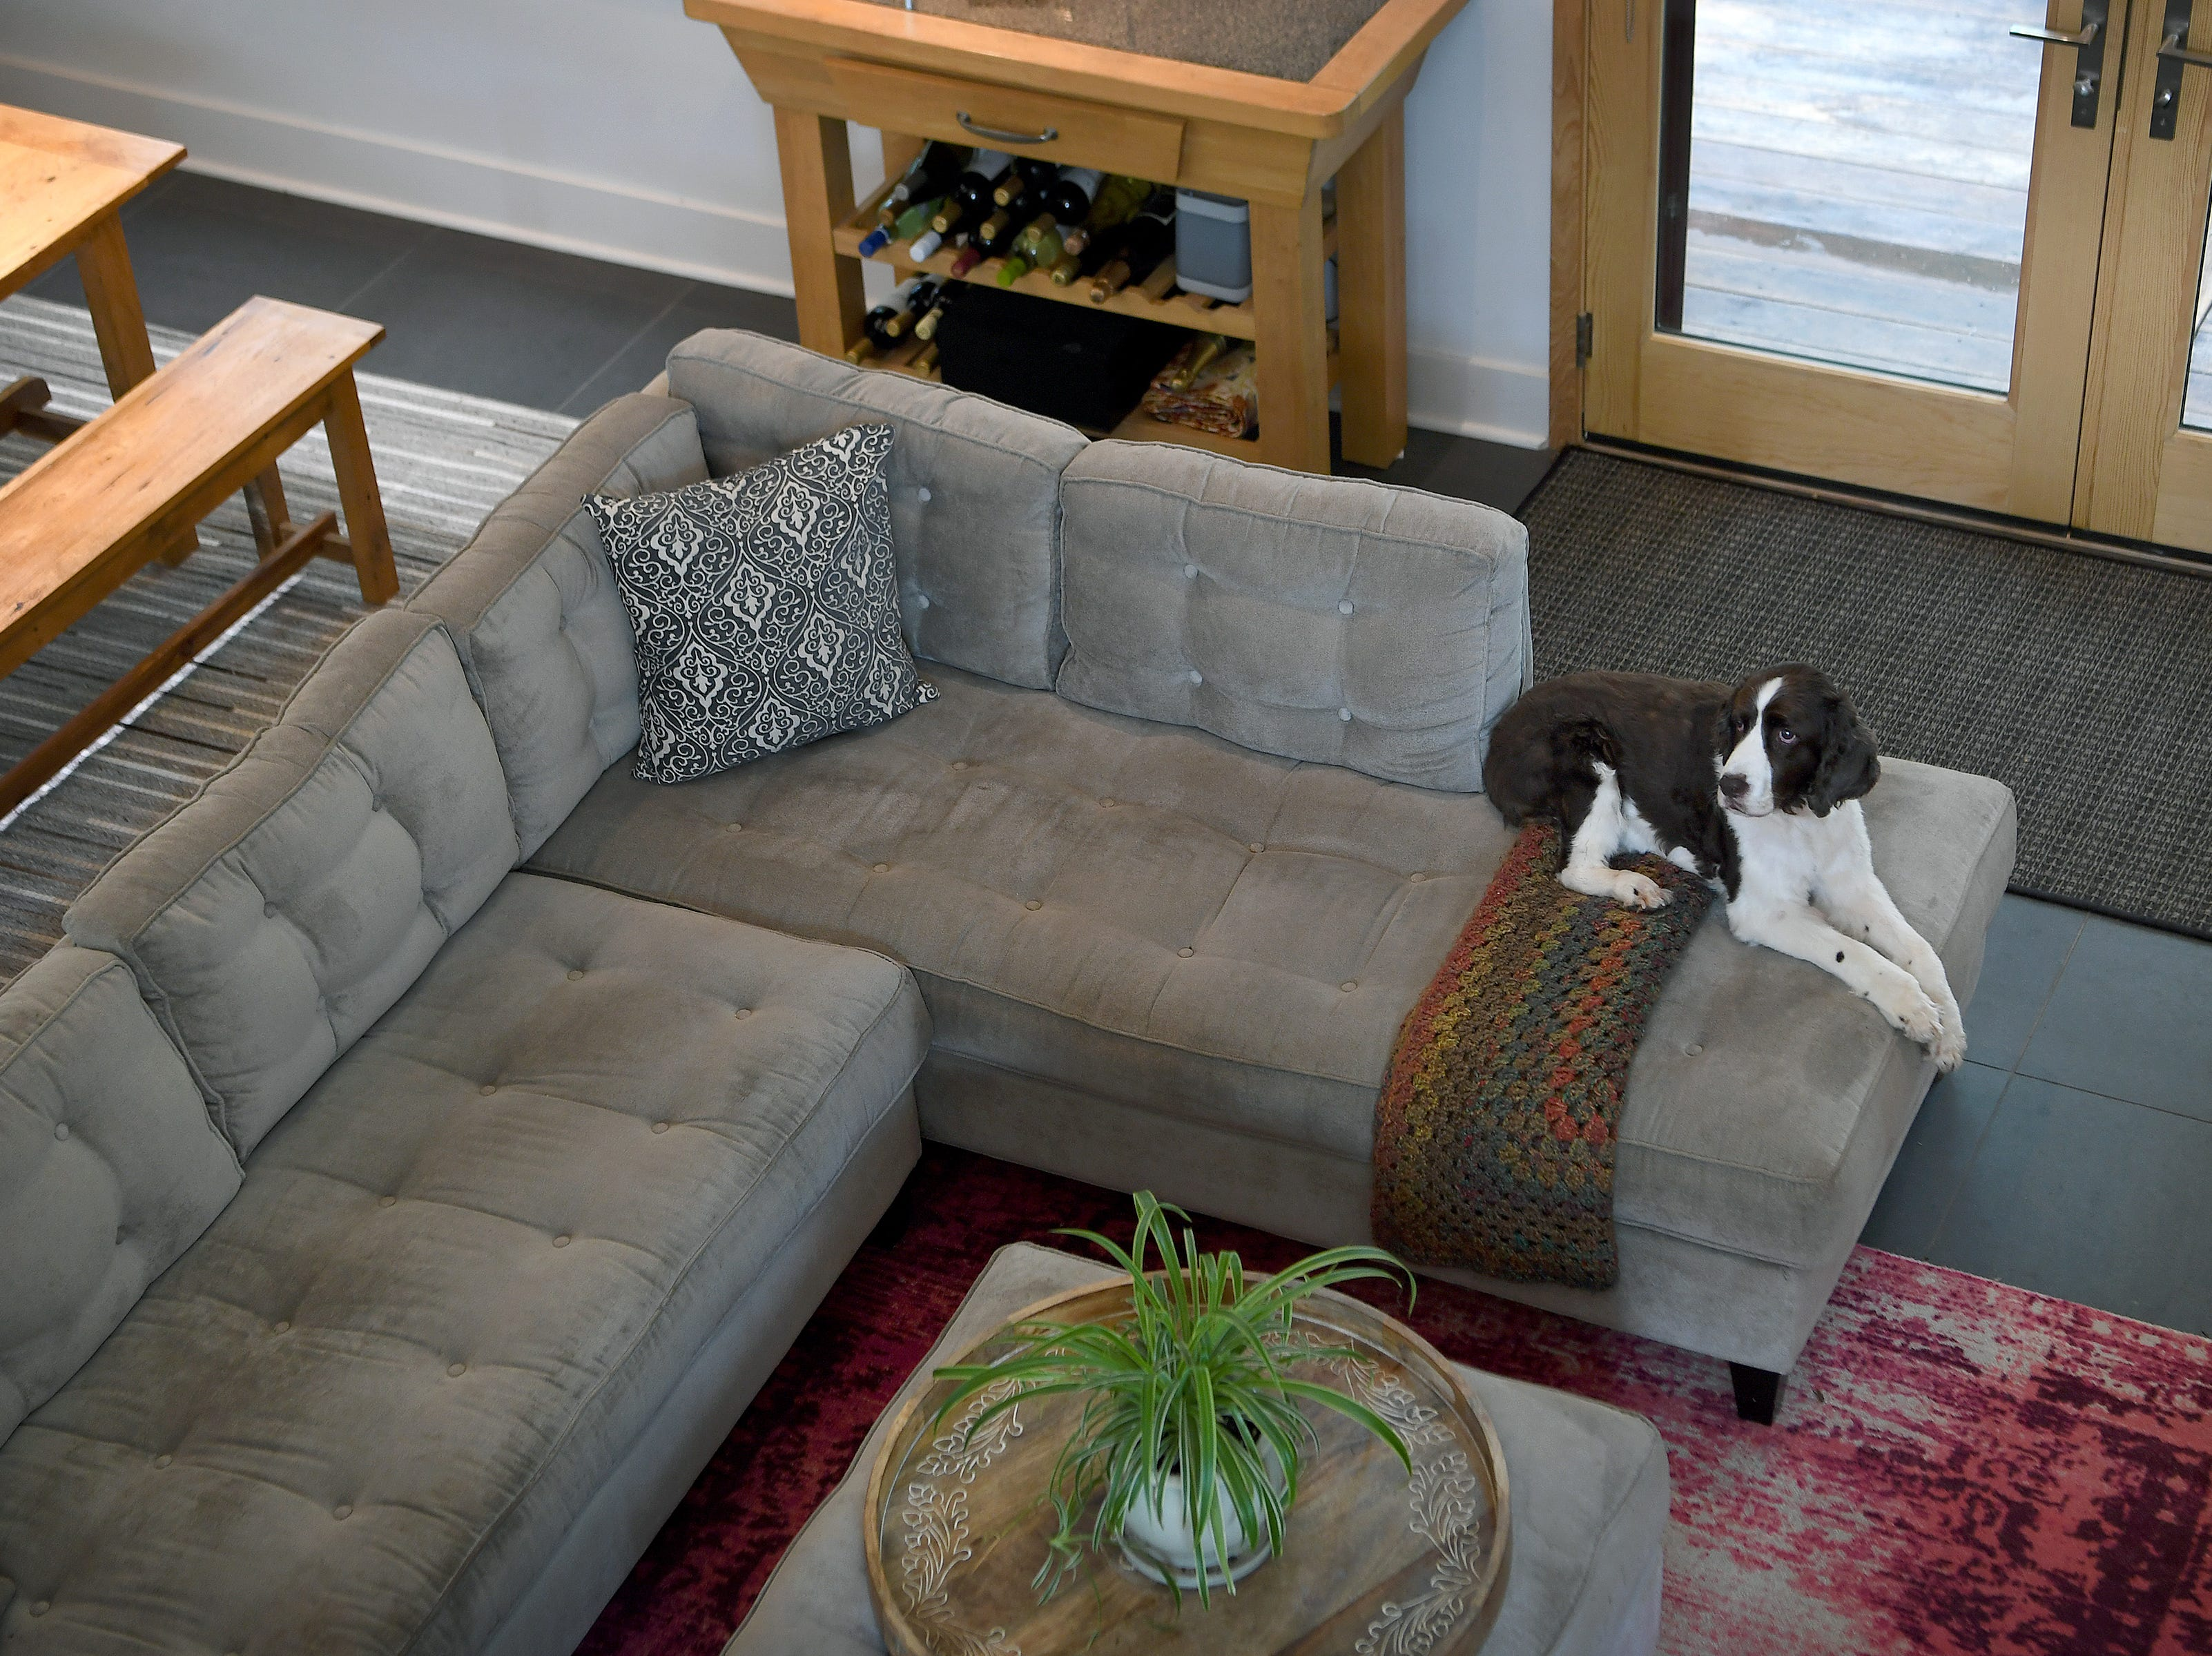 Zach, Annie Lundahl and Mary Ann Myers' English Springer Spaniel, lounges on their sectional sofa as seen from the upstairs of their lofted open-concept North Asheville home.